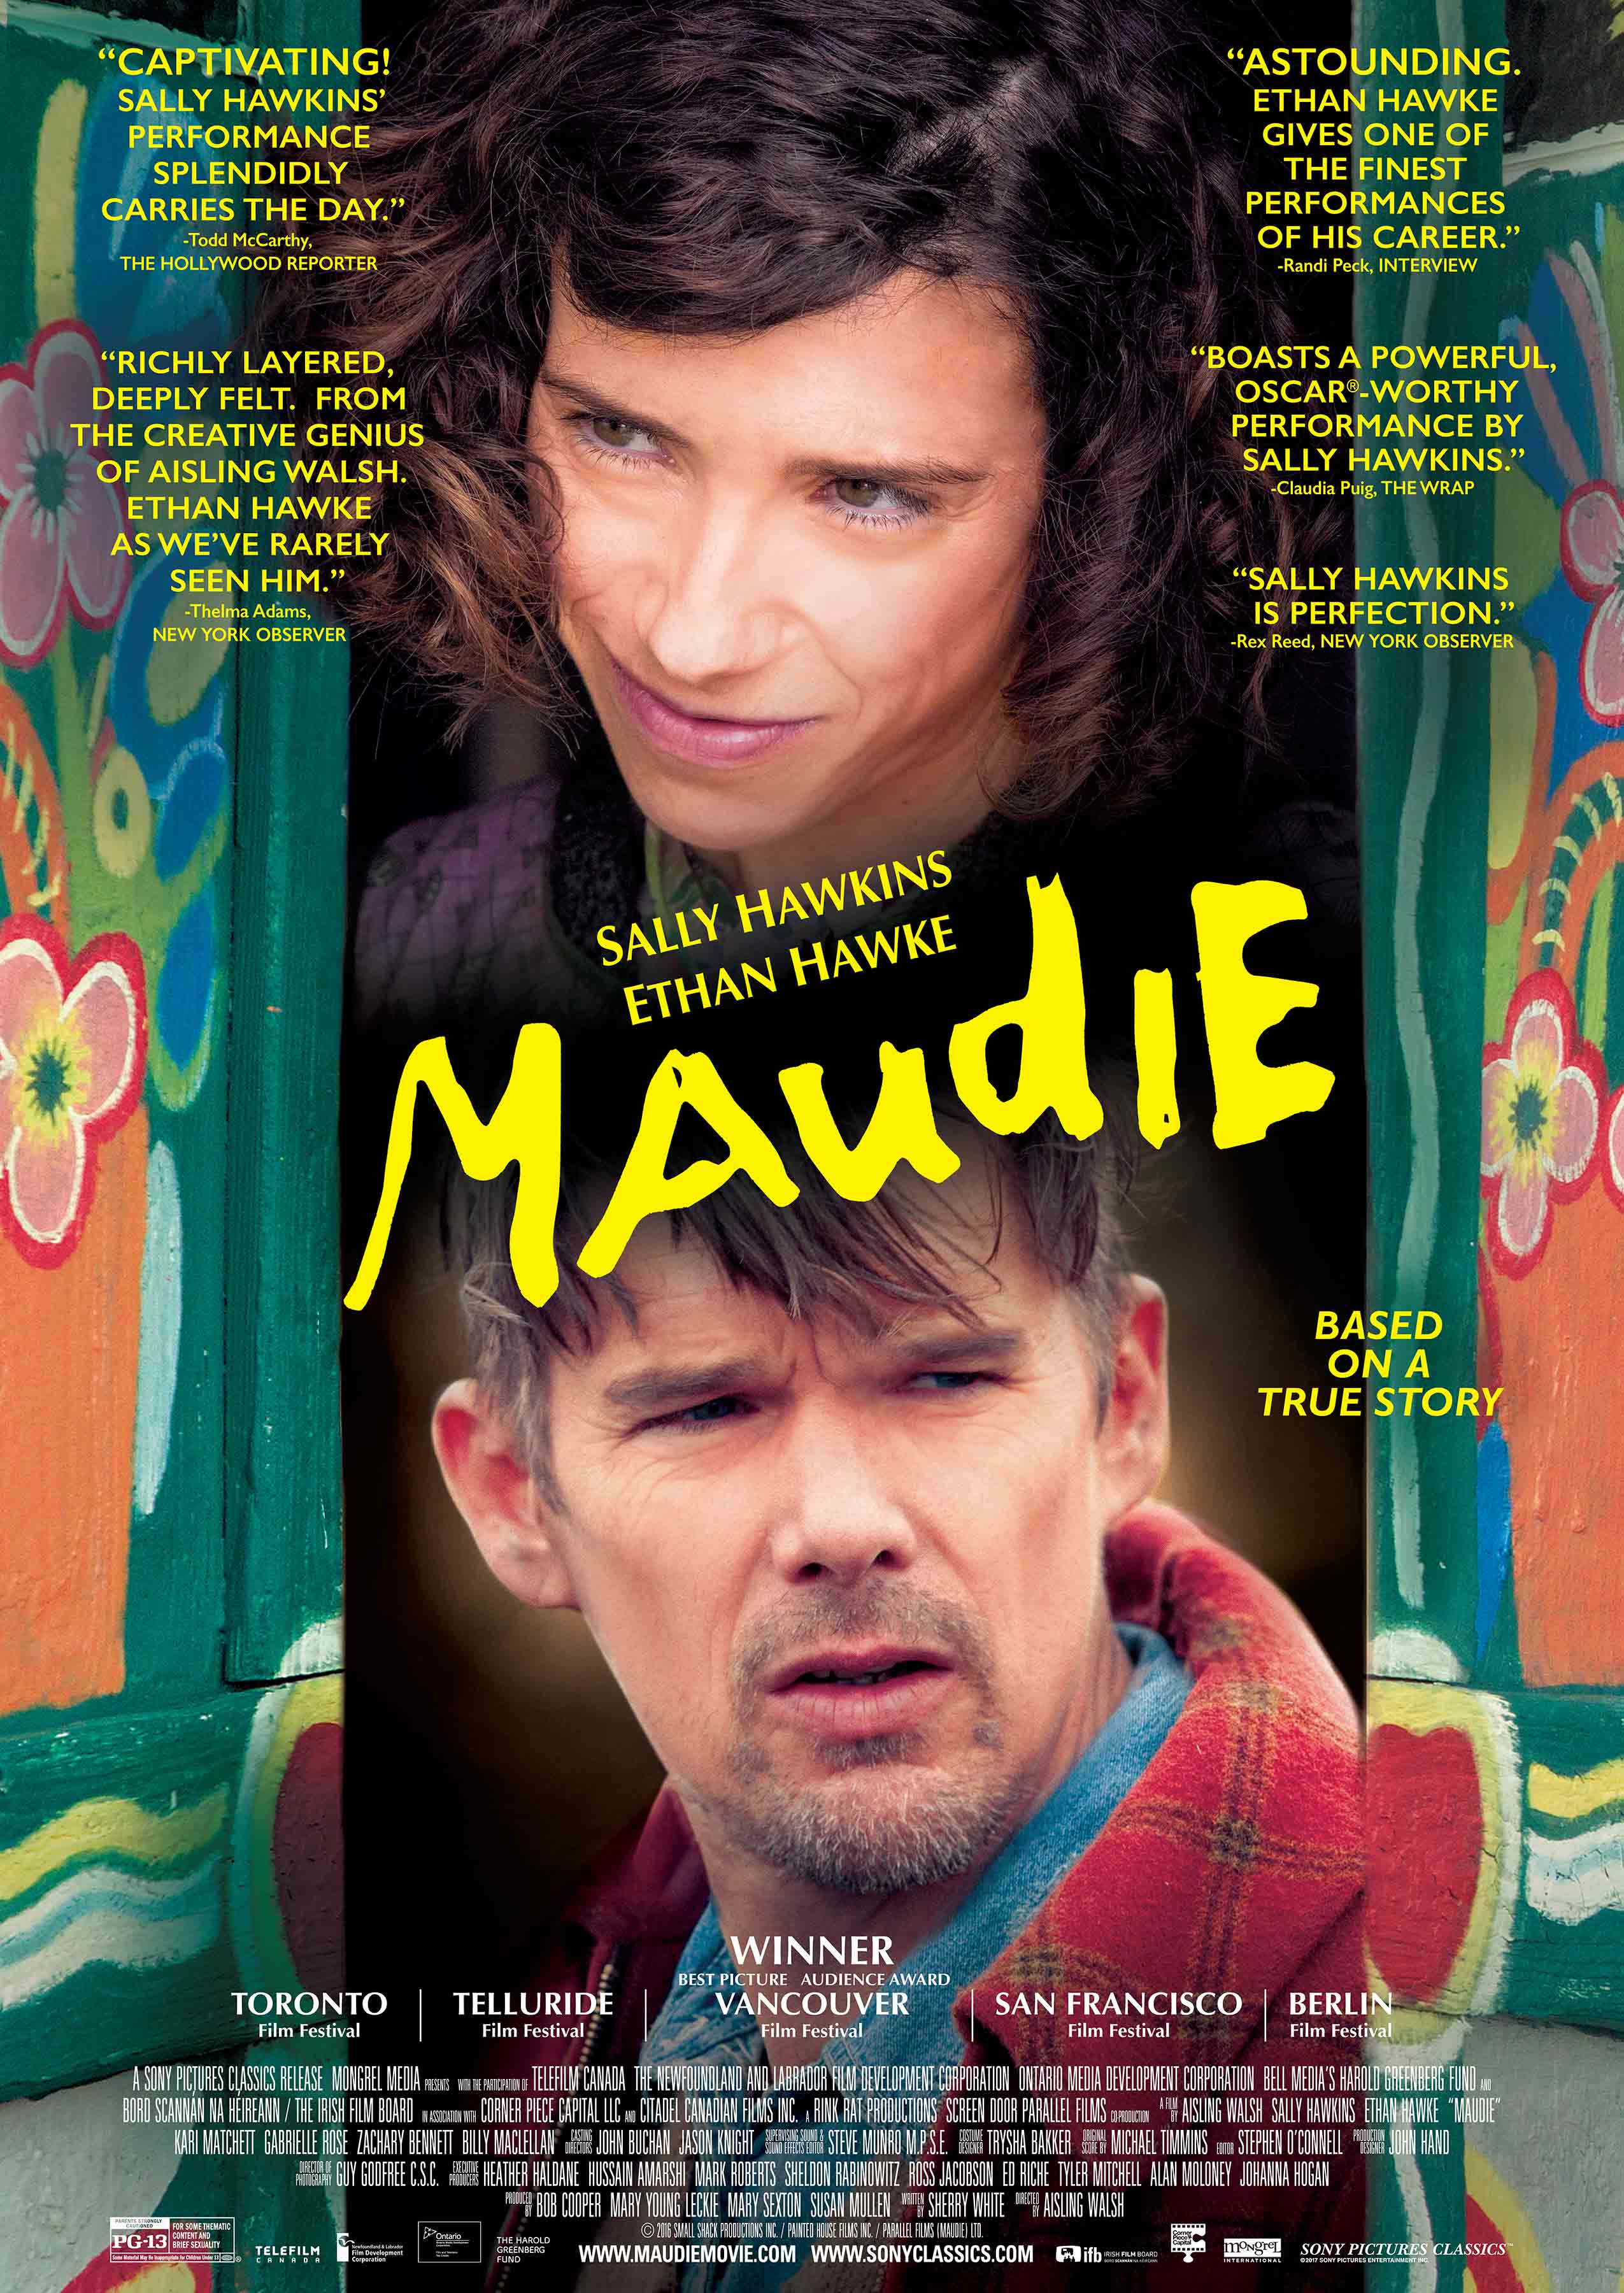 https://www.southbayfilmsociety.com/wp-content/uploads/2017/05/maudie-poster-compressed-1.jpg